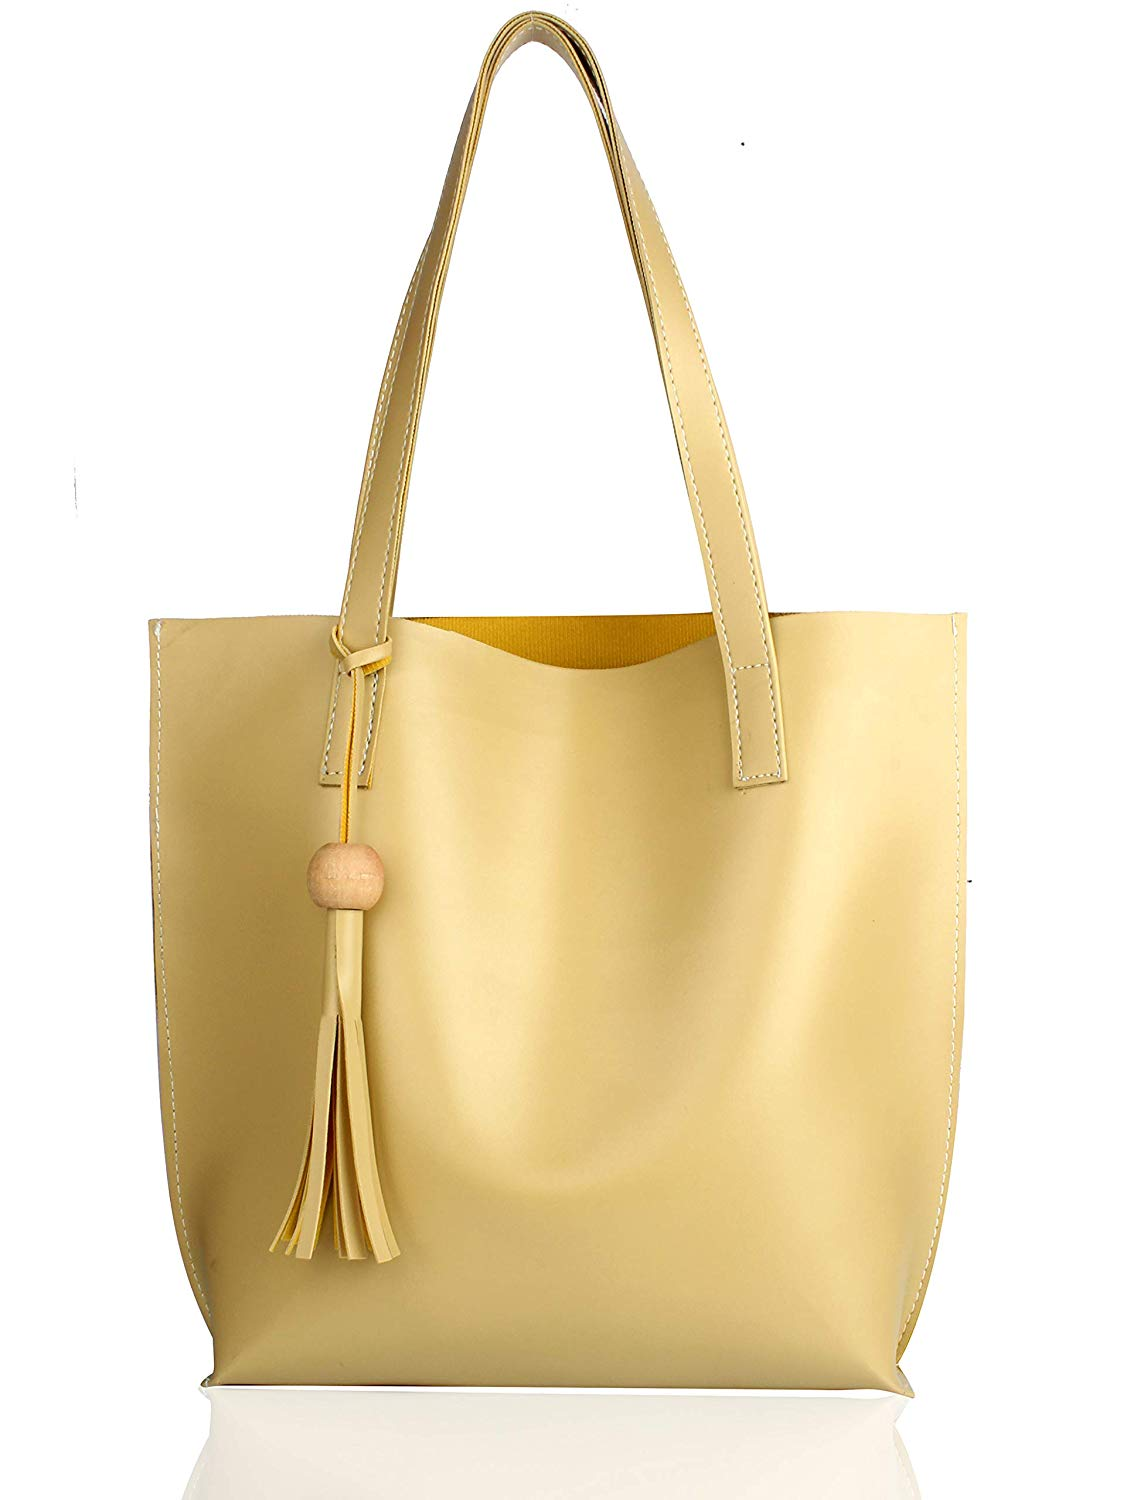 Mammon Women's Tote Handbag